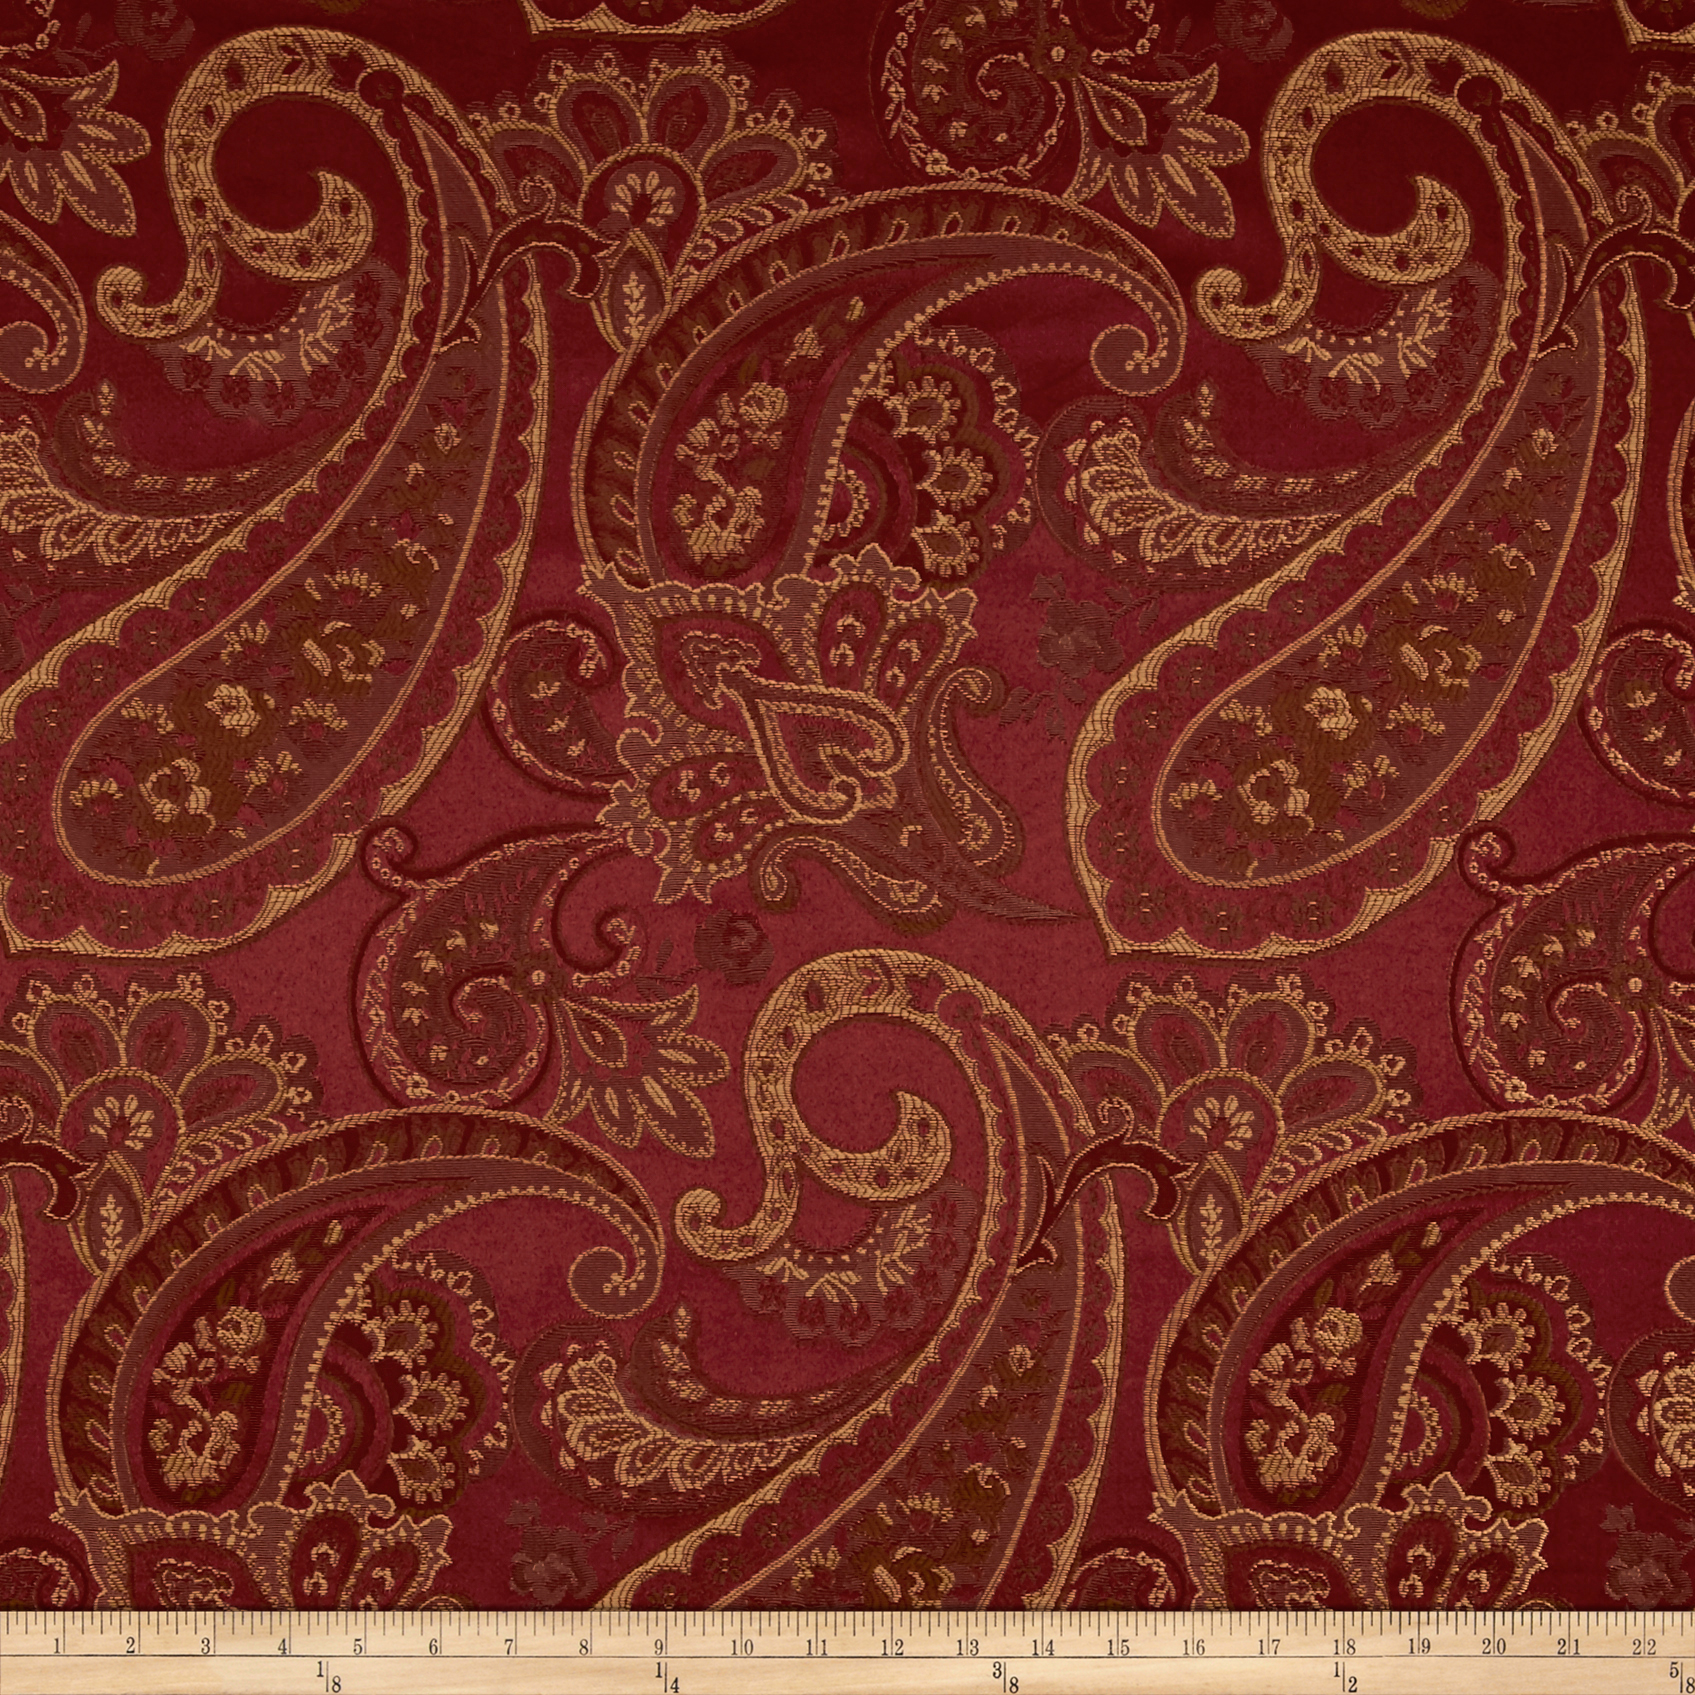 Eroica Candytuft Jacquard Merlot Fabric by Eroica in USA